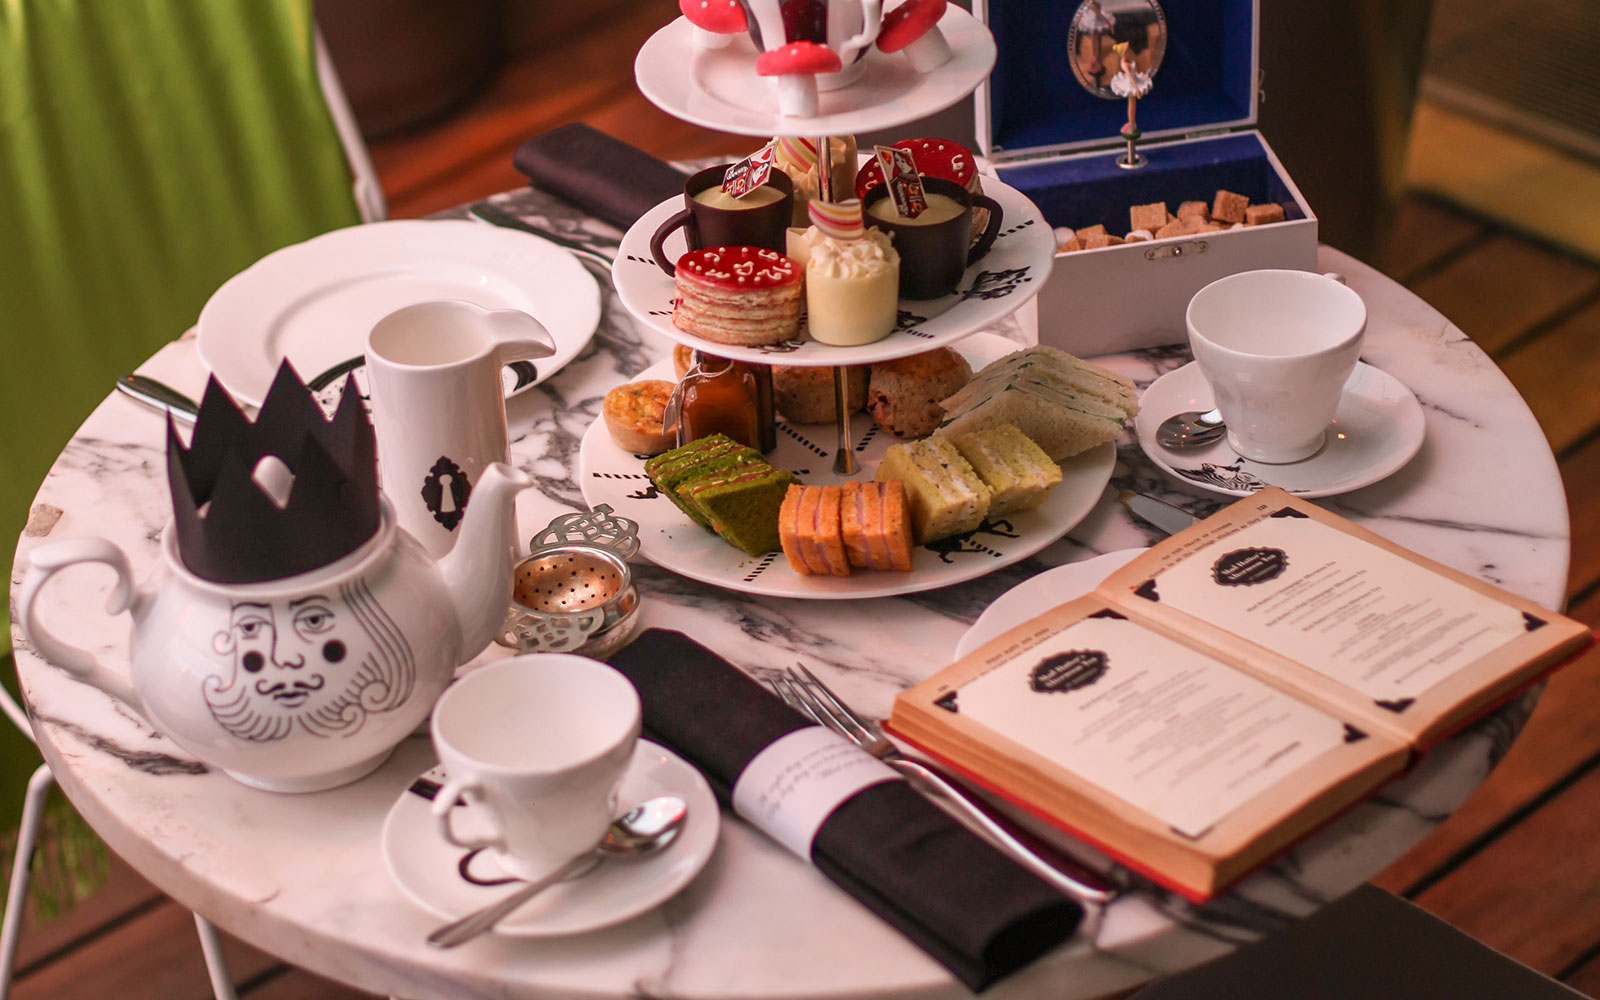 Mad Hatter's Afternoon Tea at the Sanderson Hotel